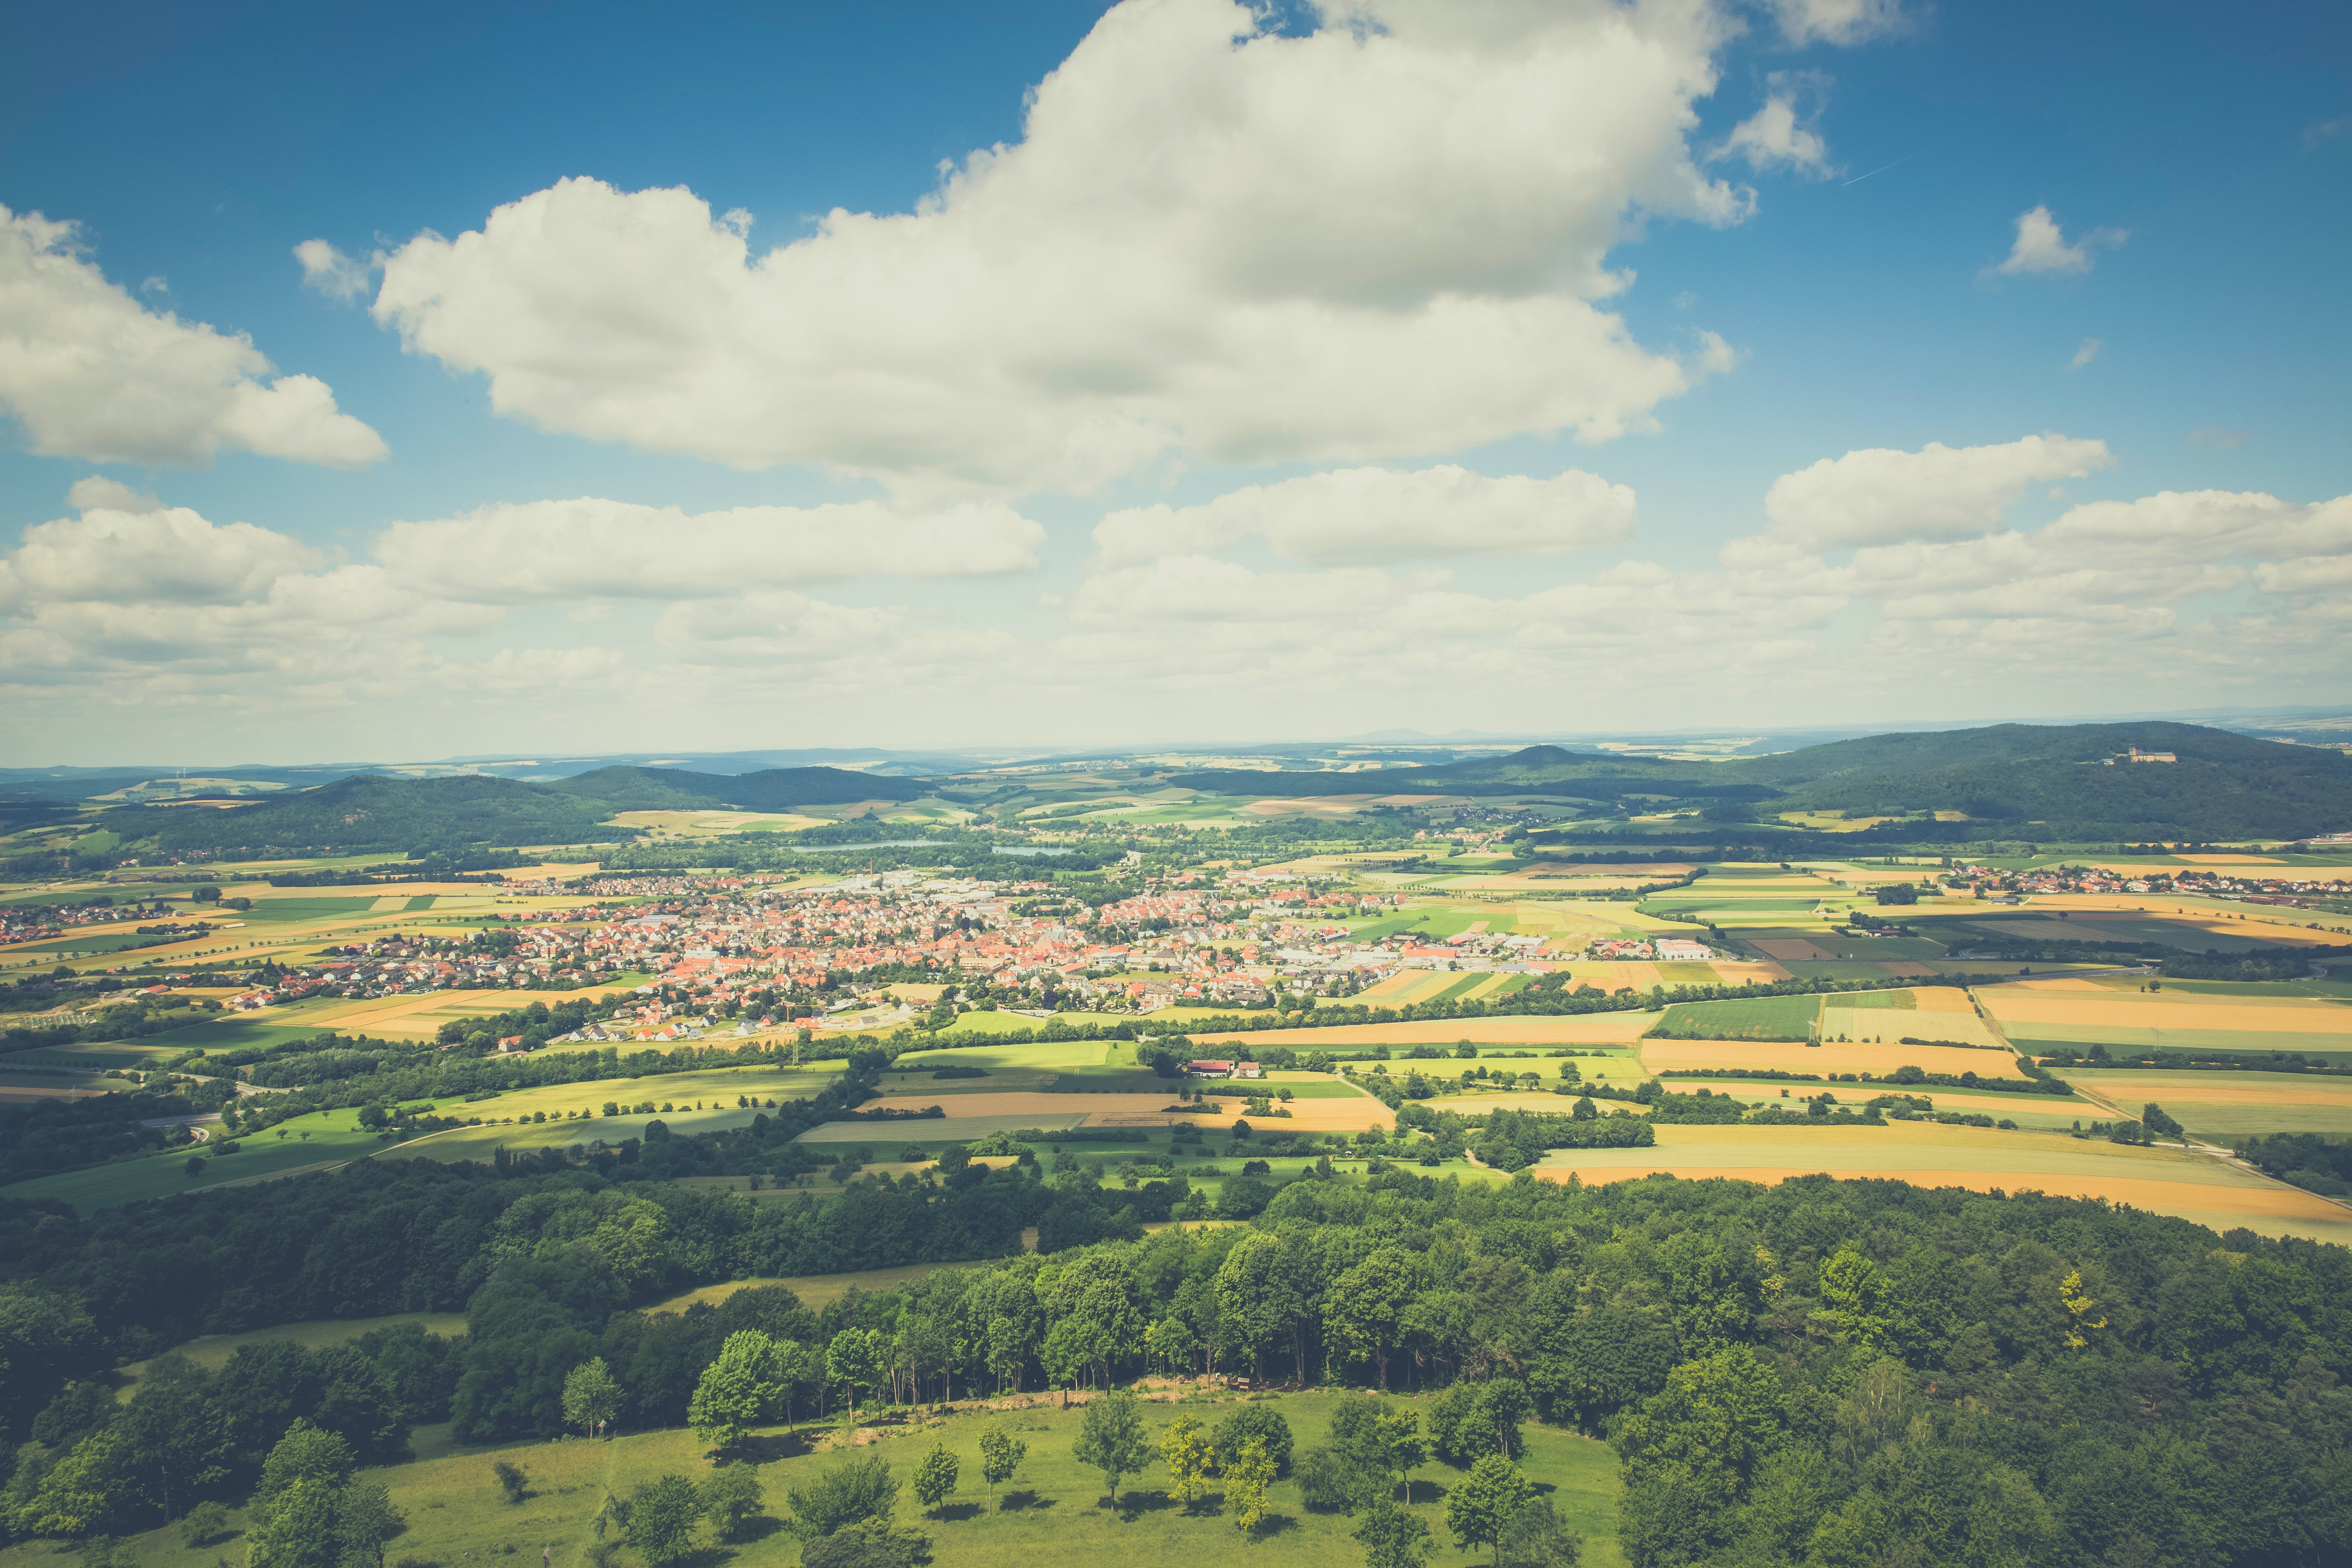 Aerial Photography of Green Fields Under Blue Sky and White Clouds during Daytime